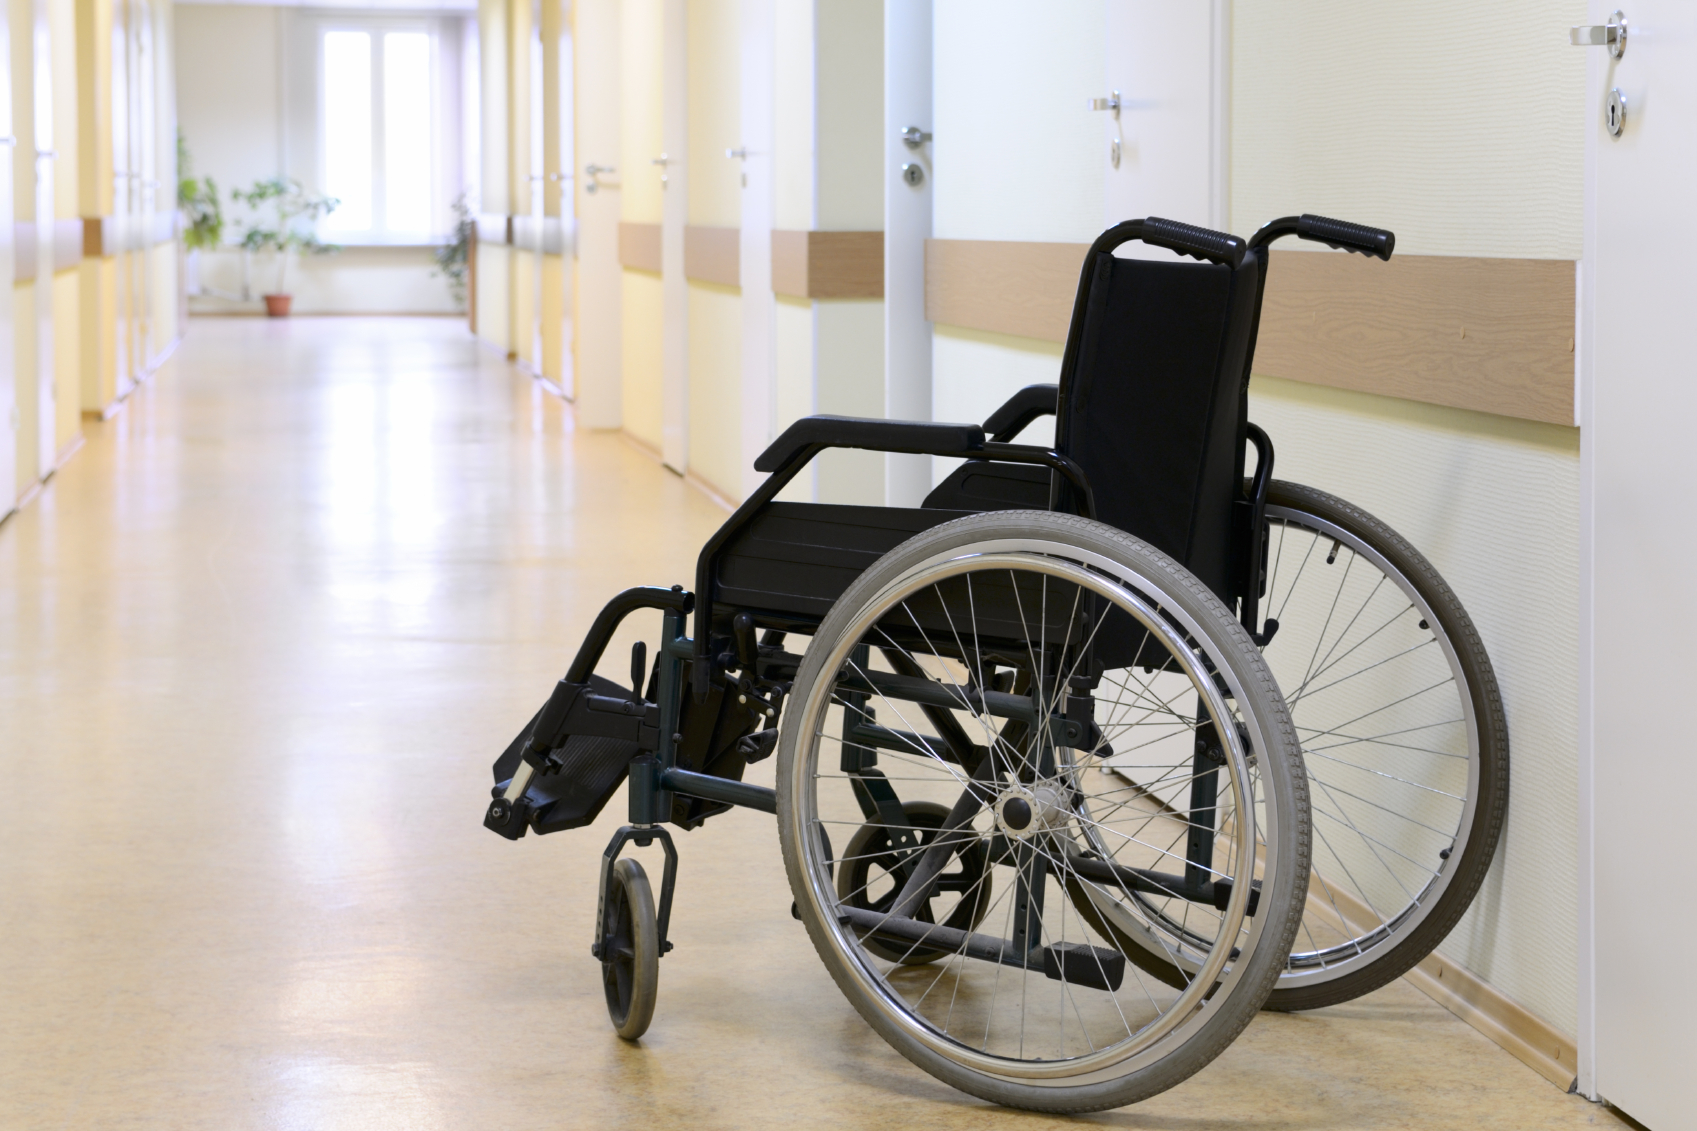 An empty wheelchair in a nursing home signals neglect